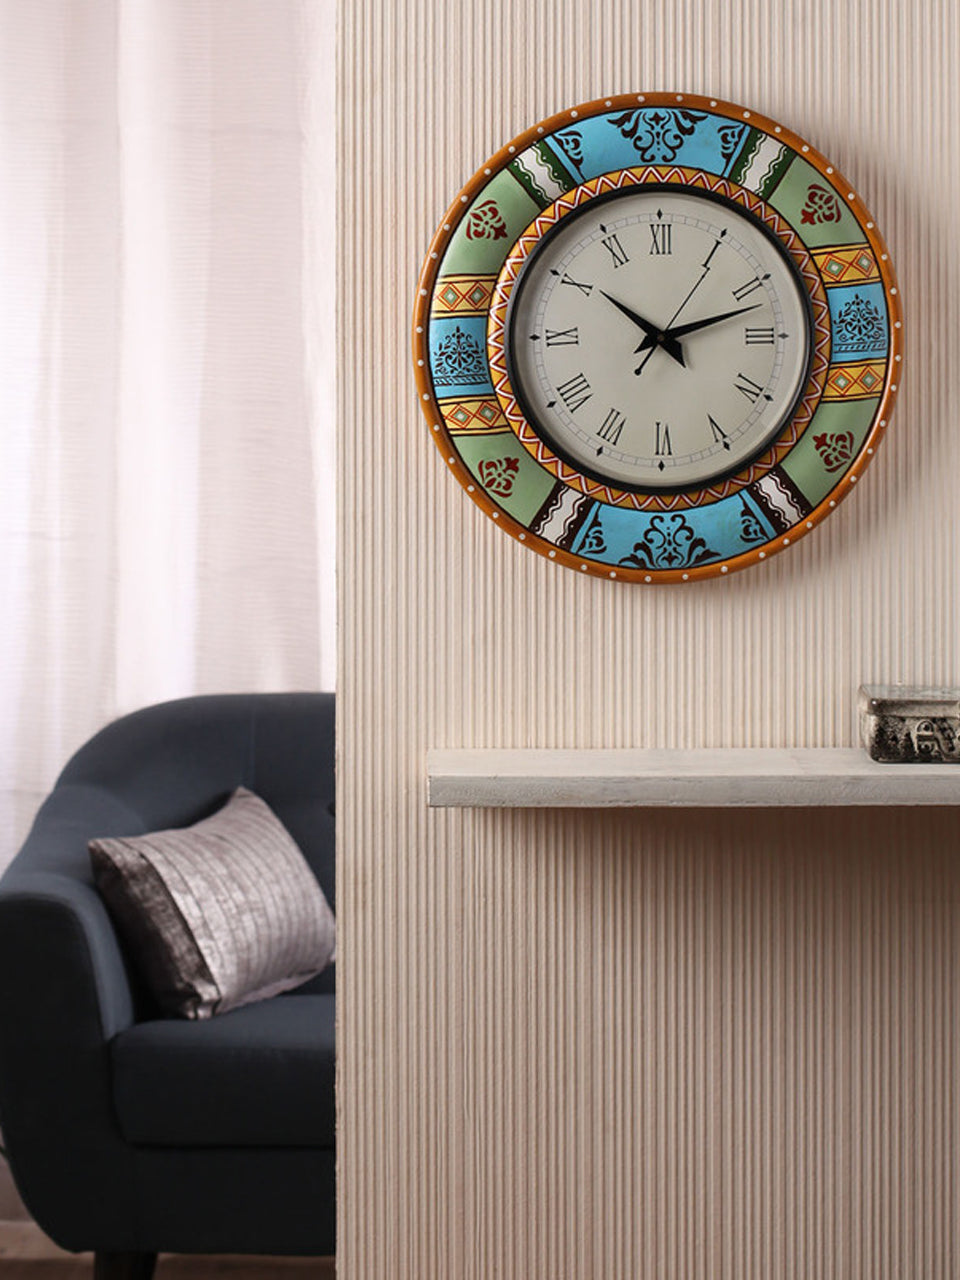 EXQUISITE WALL CLOCKS